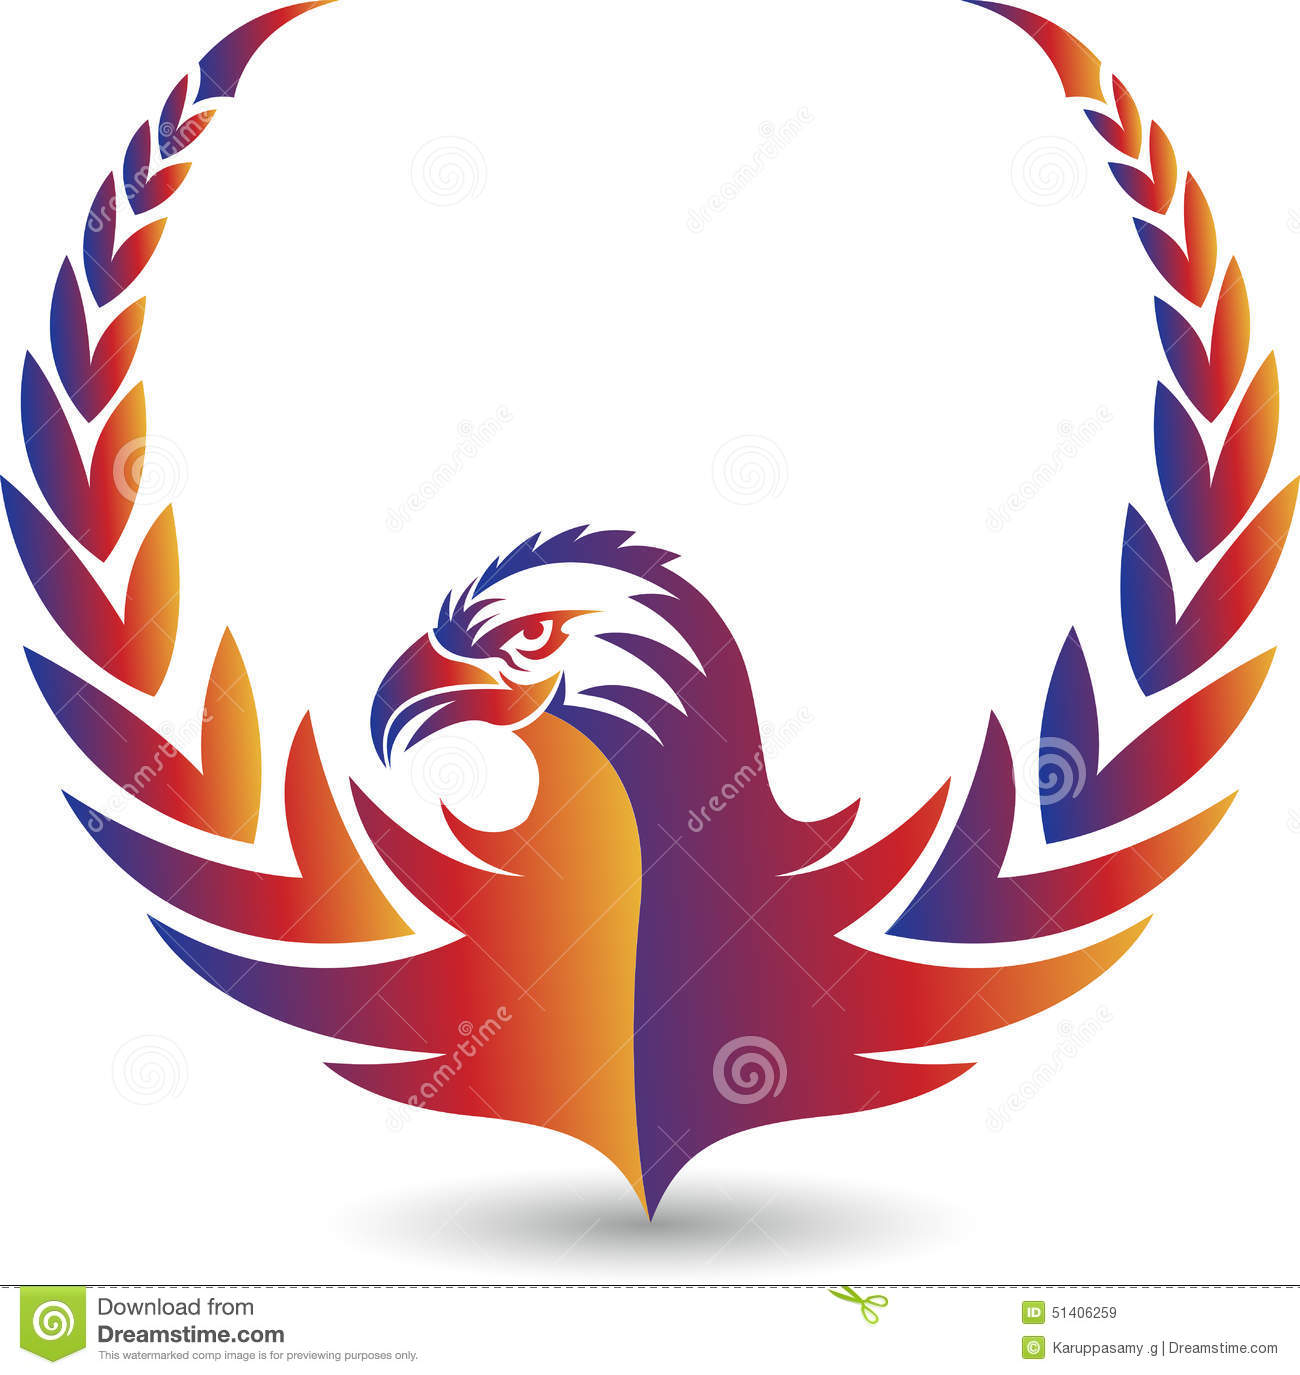 eagle logo stock vector illustration of abstract design